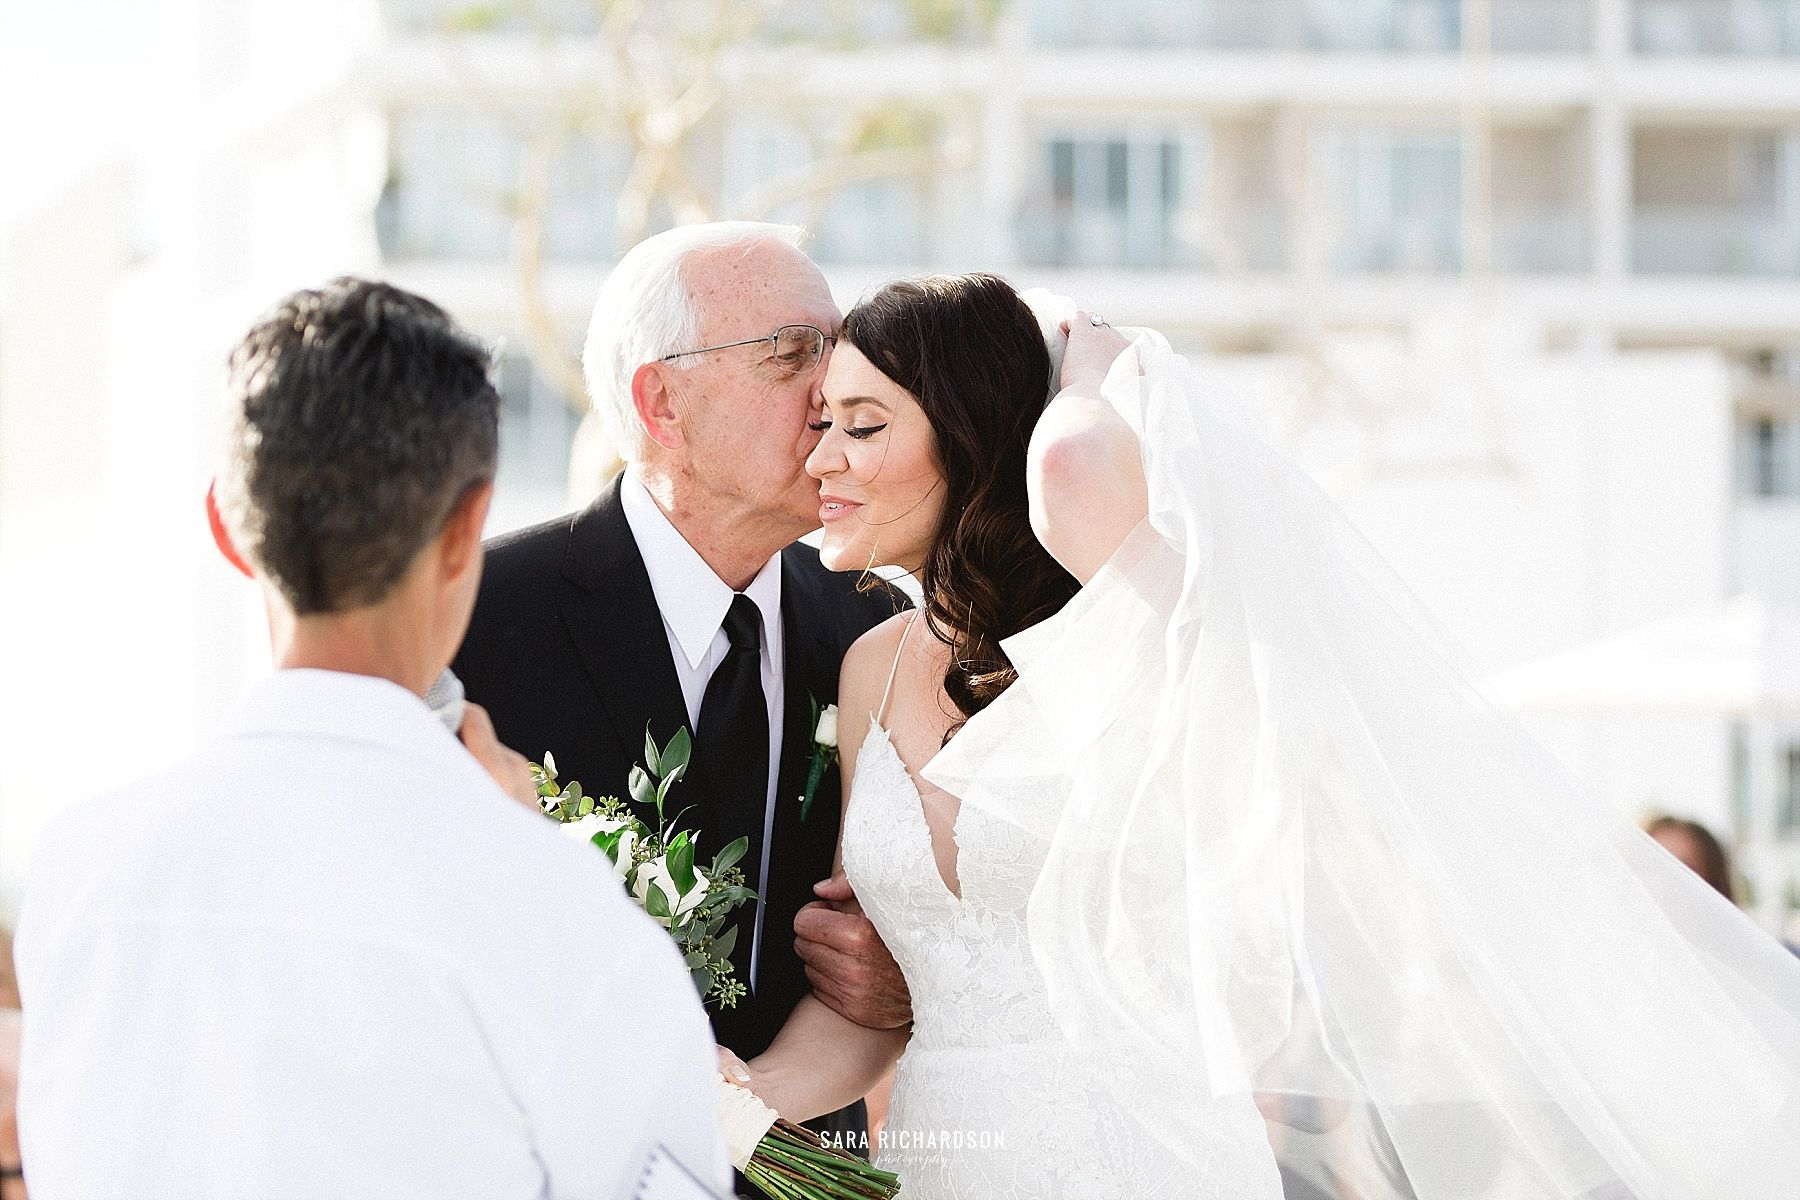 Father of Bride giving away the Bride on her Wedding Day at LeBlanc in Los Cabos Mexico. Destination Wedding in Los Cabos Mexico with Wedding Planners being Cabo Wedding Services and design by Jesse Wolff